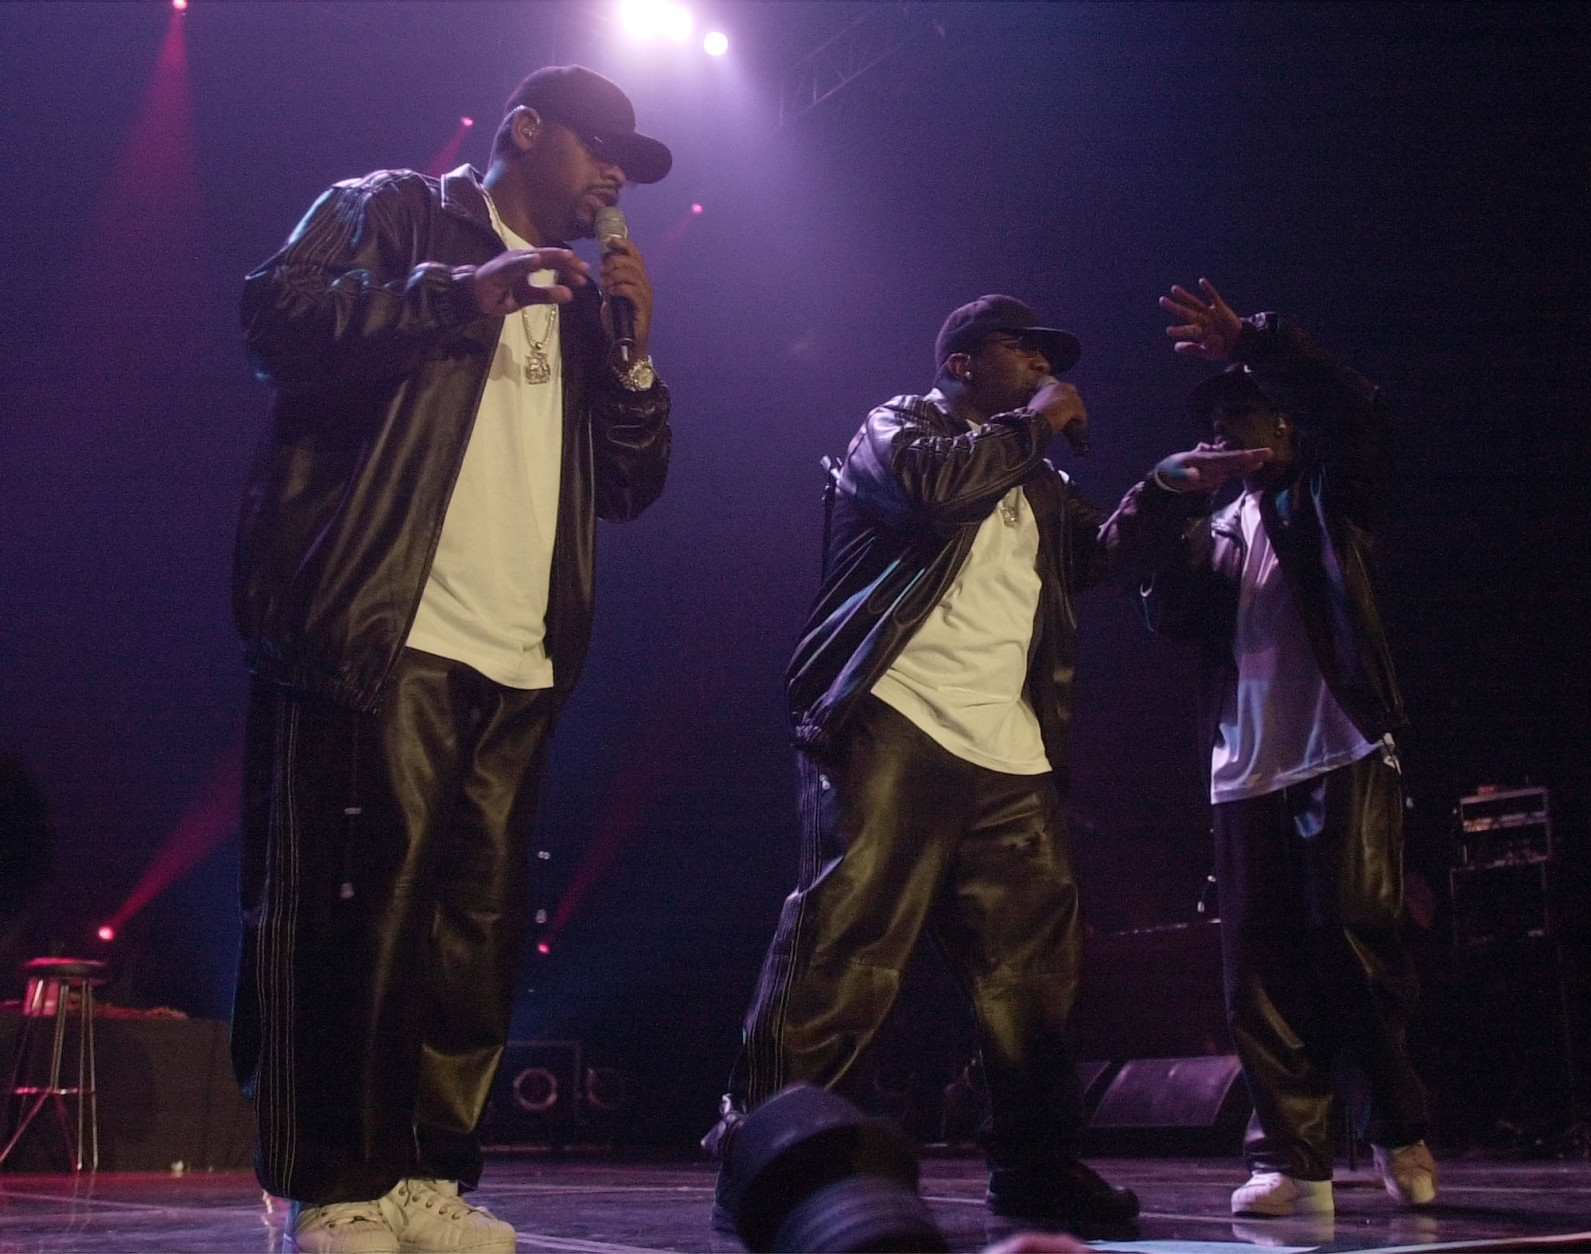 American R&B group Boyz II men perform during a concert in Jakarta, Indonesia, Sunday night, May 2, 2005. (AP Photo/ Achmad Ibrahim)